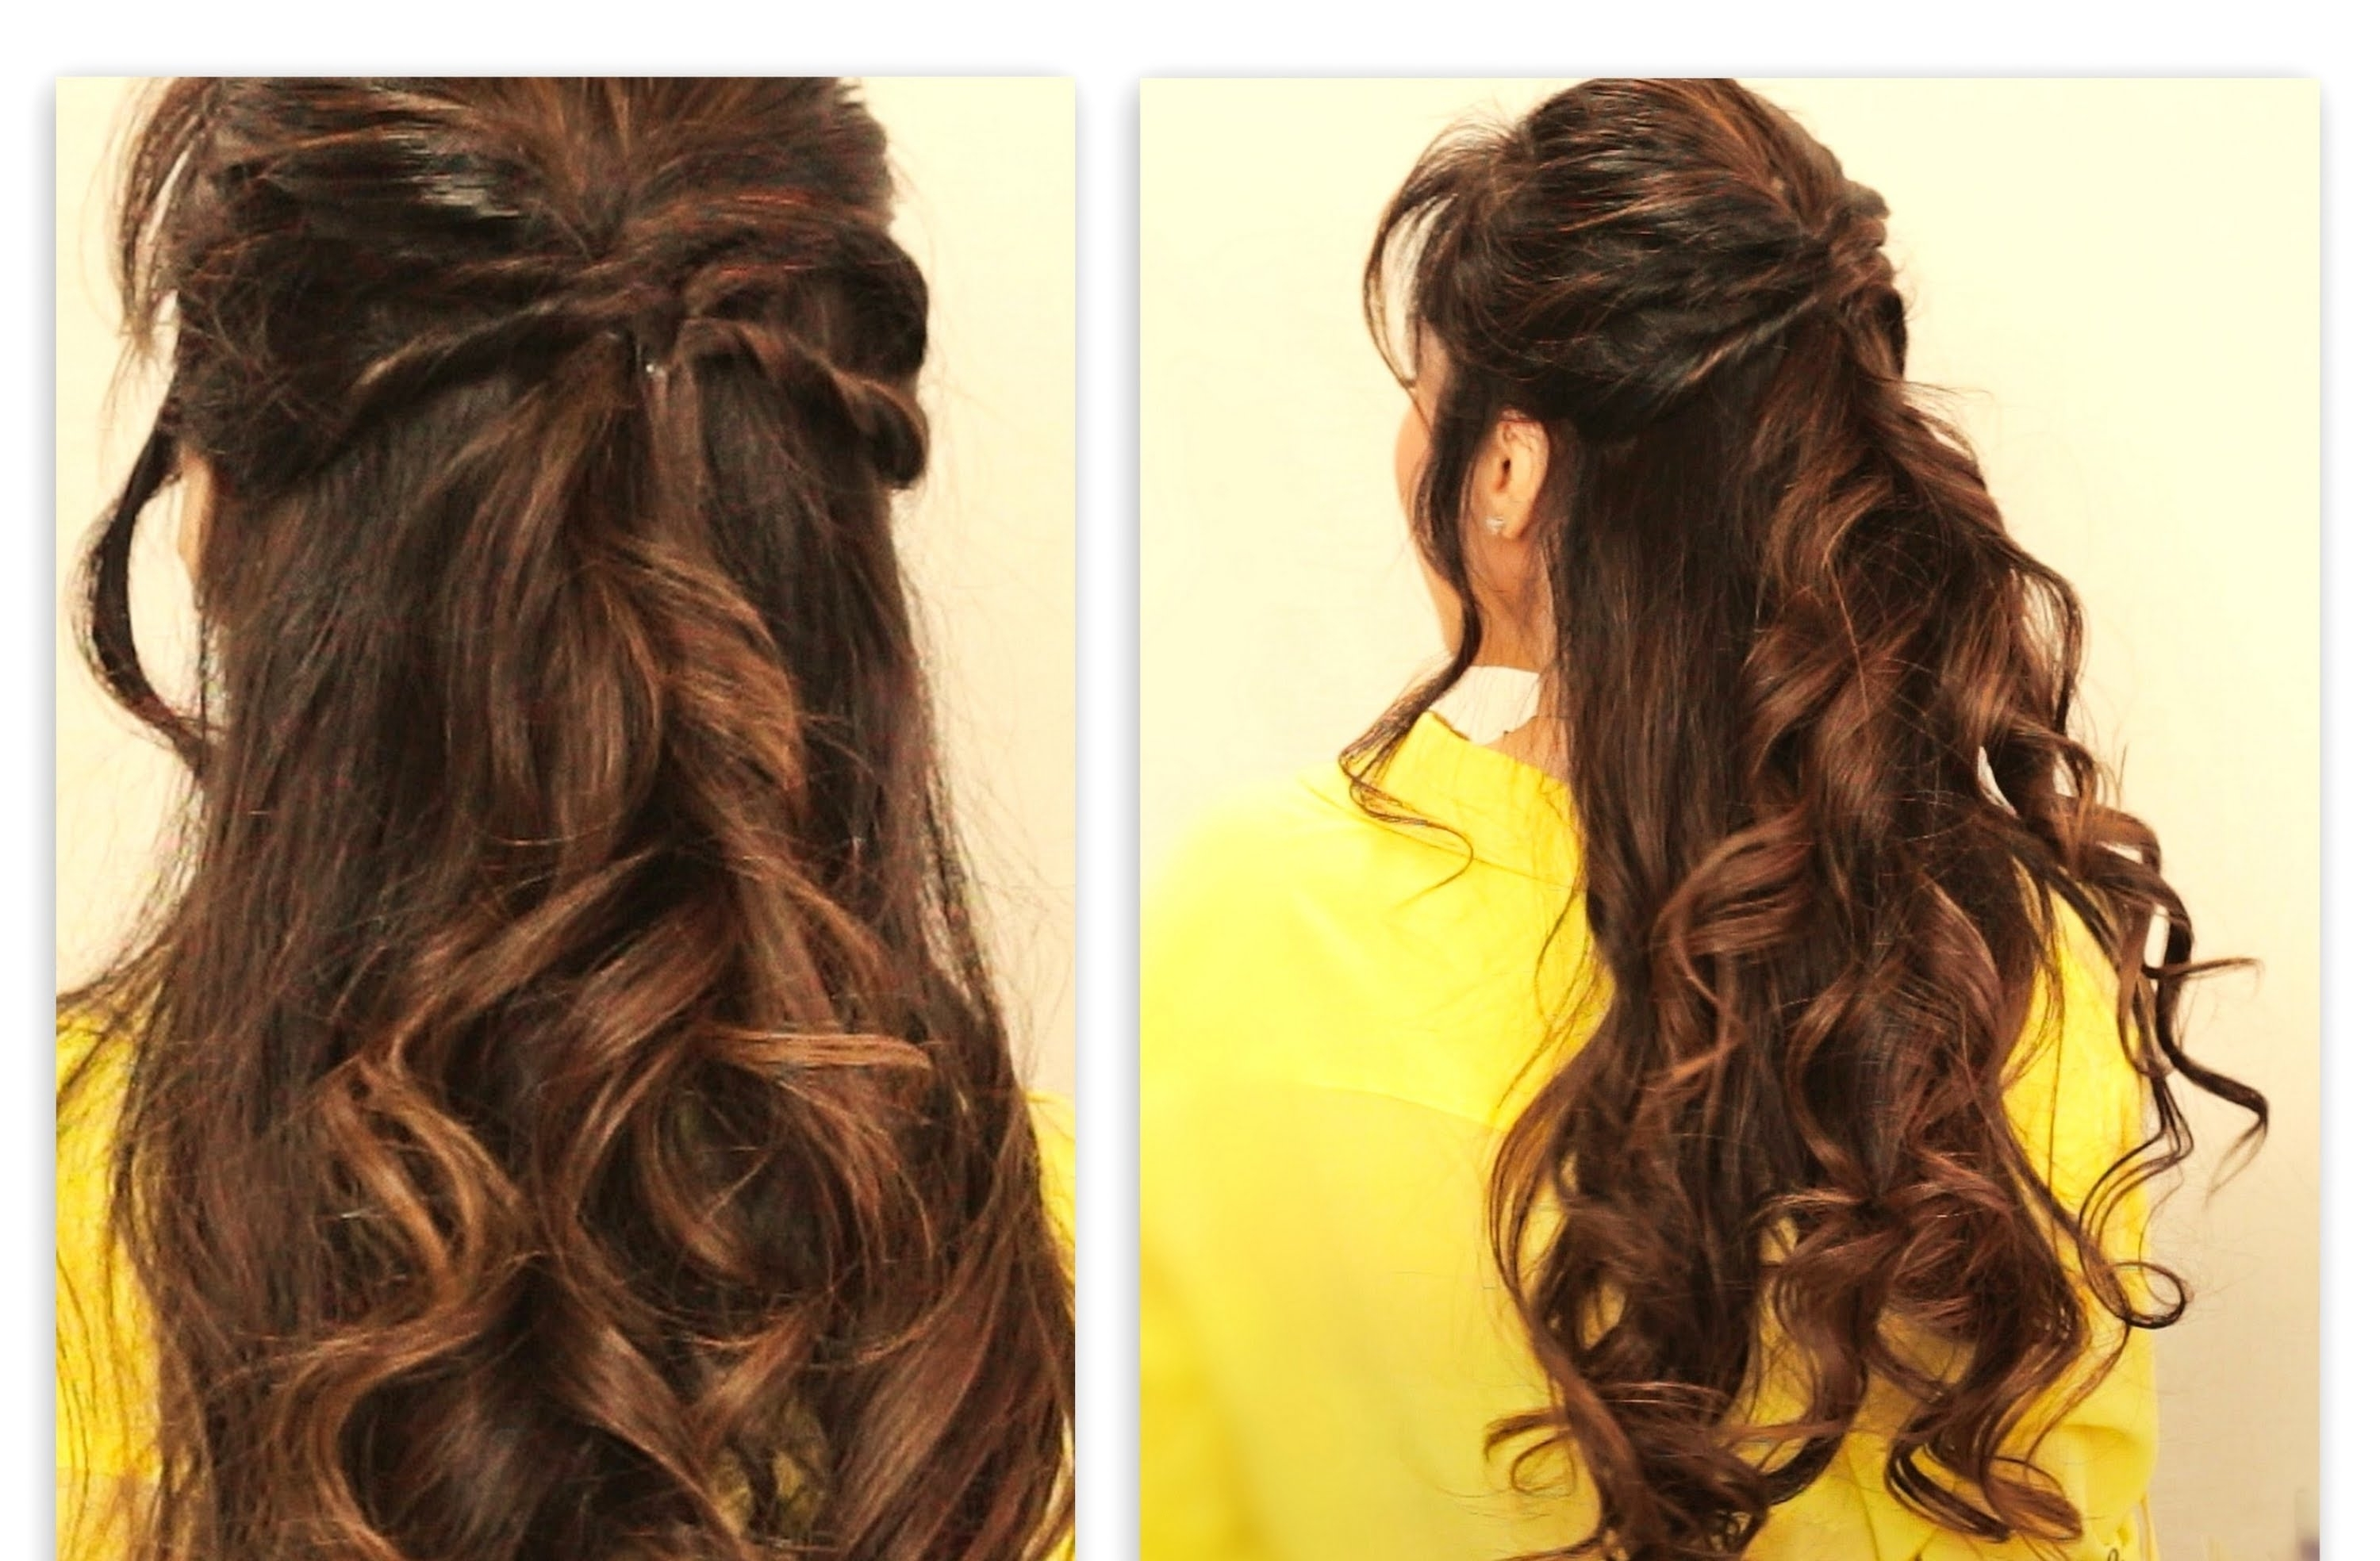 ☆ Cute Twisted Flip Half Up Half Down Fall Hairstyles For Medium Pertaining To Half Updo Hairstyles For Medium Hair (View 1 of 15)